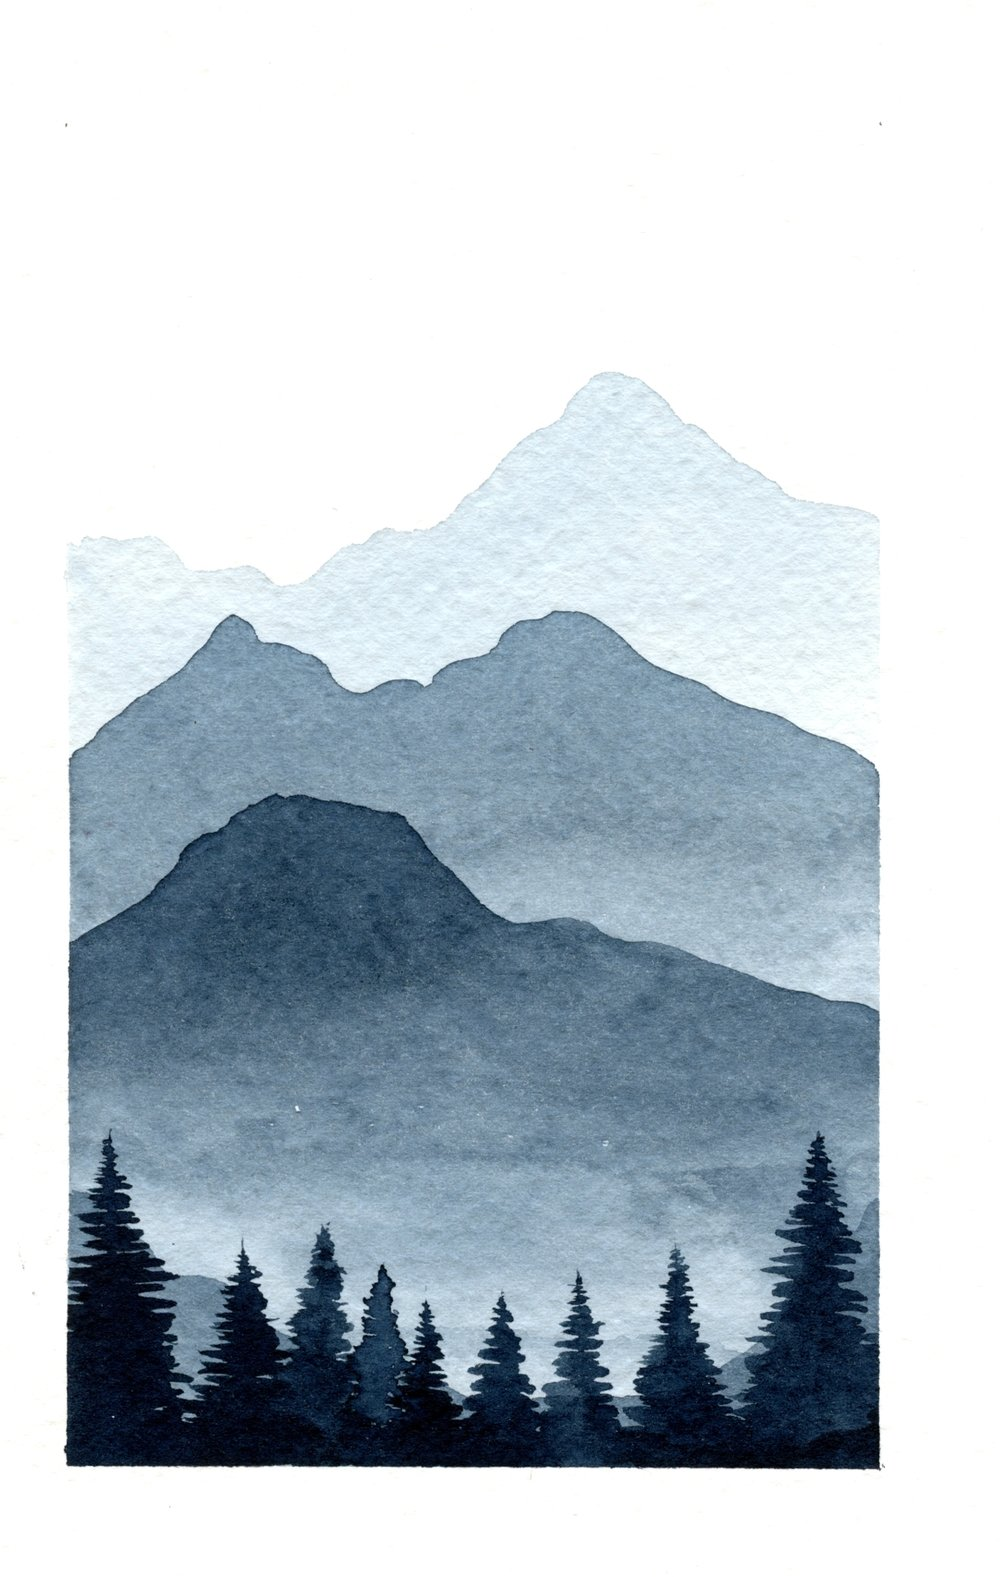 watercolor006.jpg